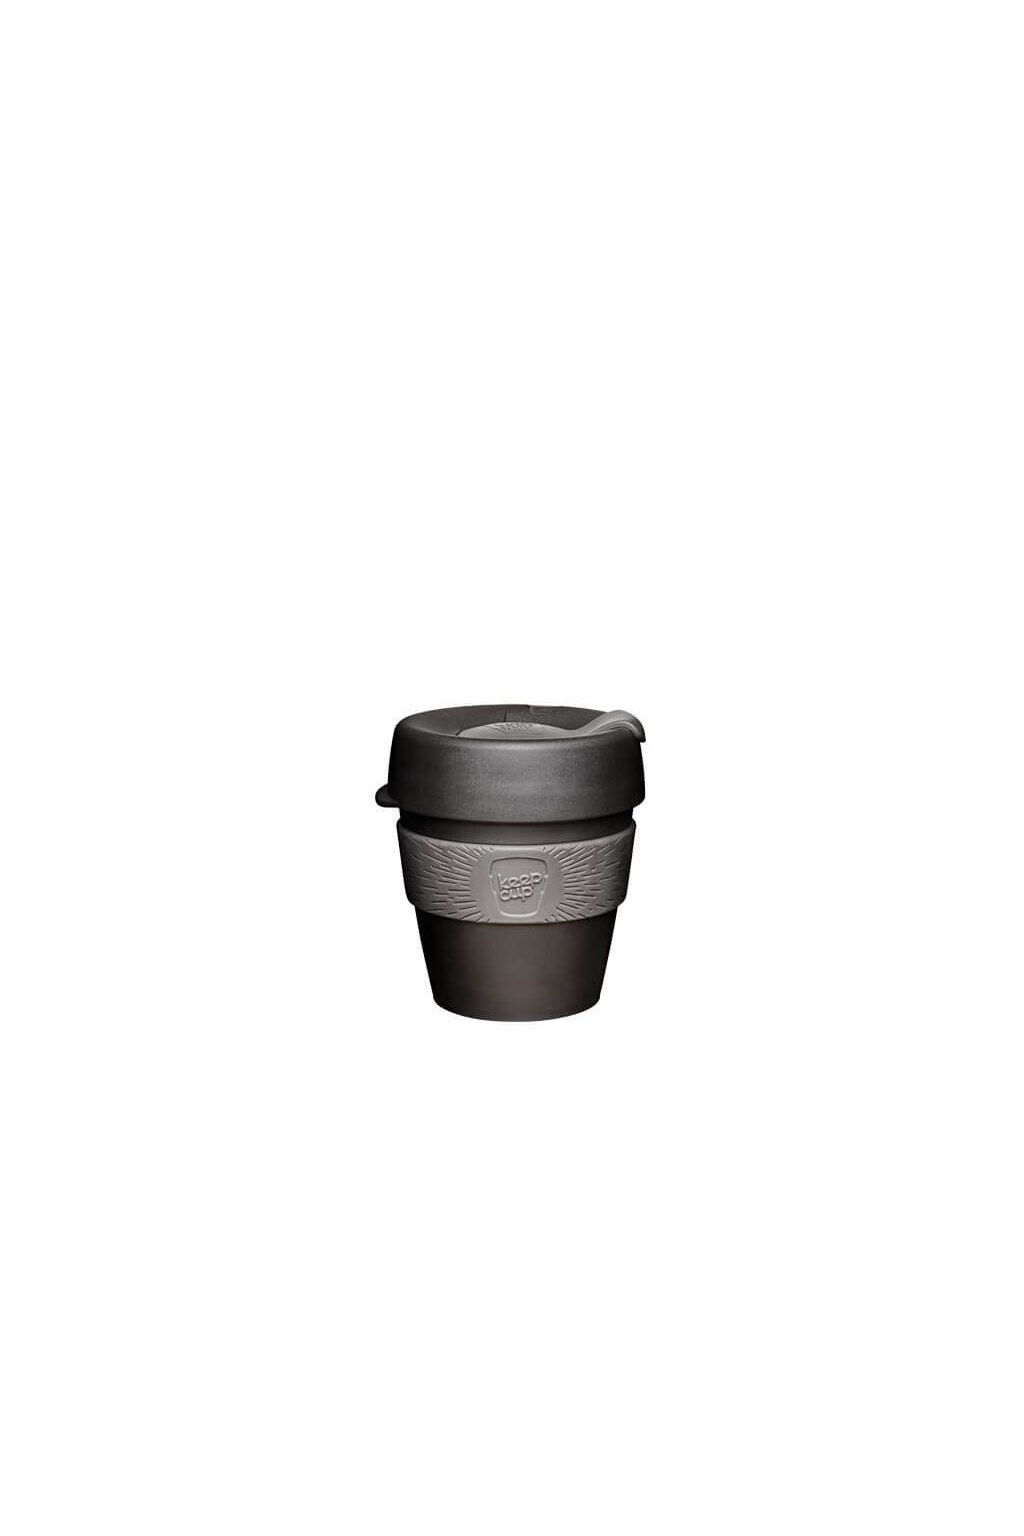 KeepCup DOPPIO 227 ml